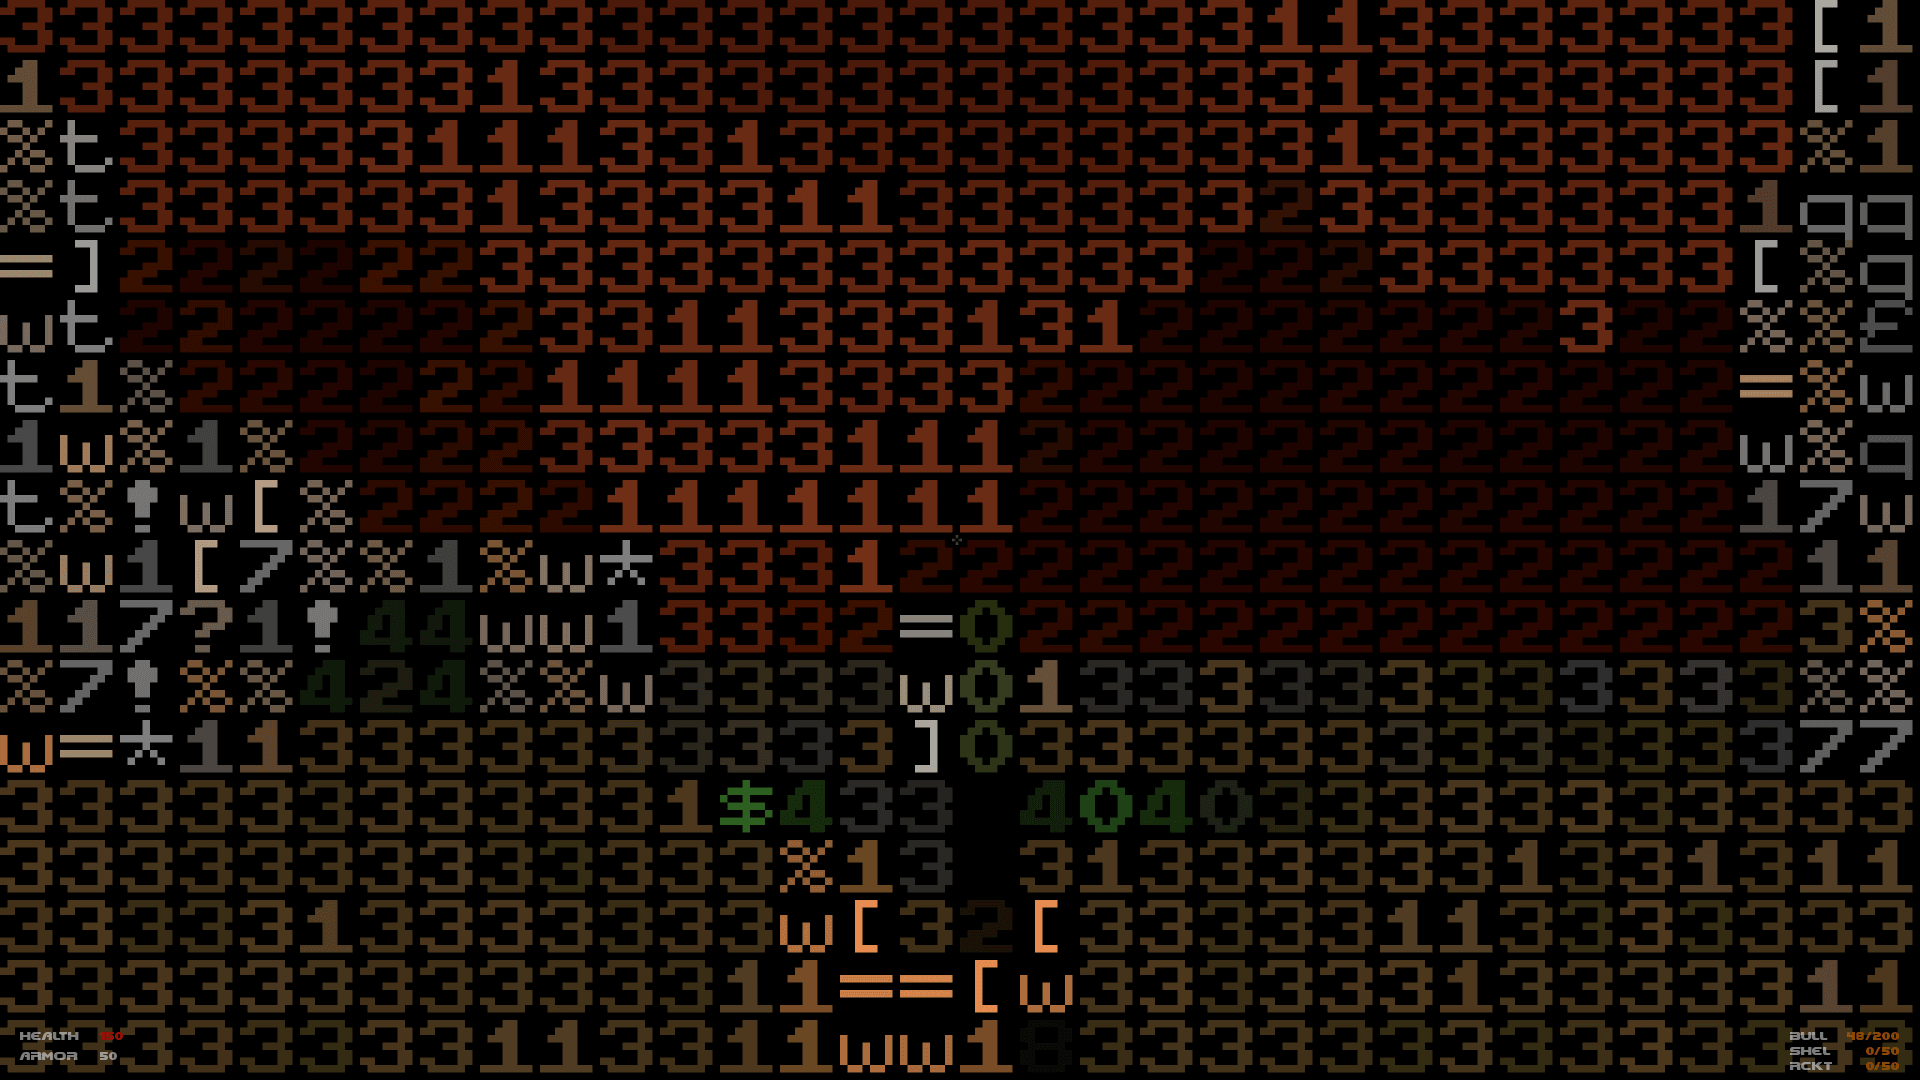 DOOM in ASCII mode is equal parts fun and frustrating